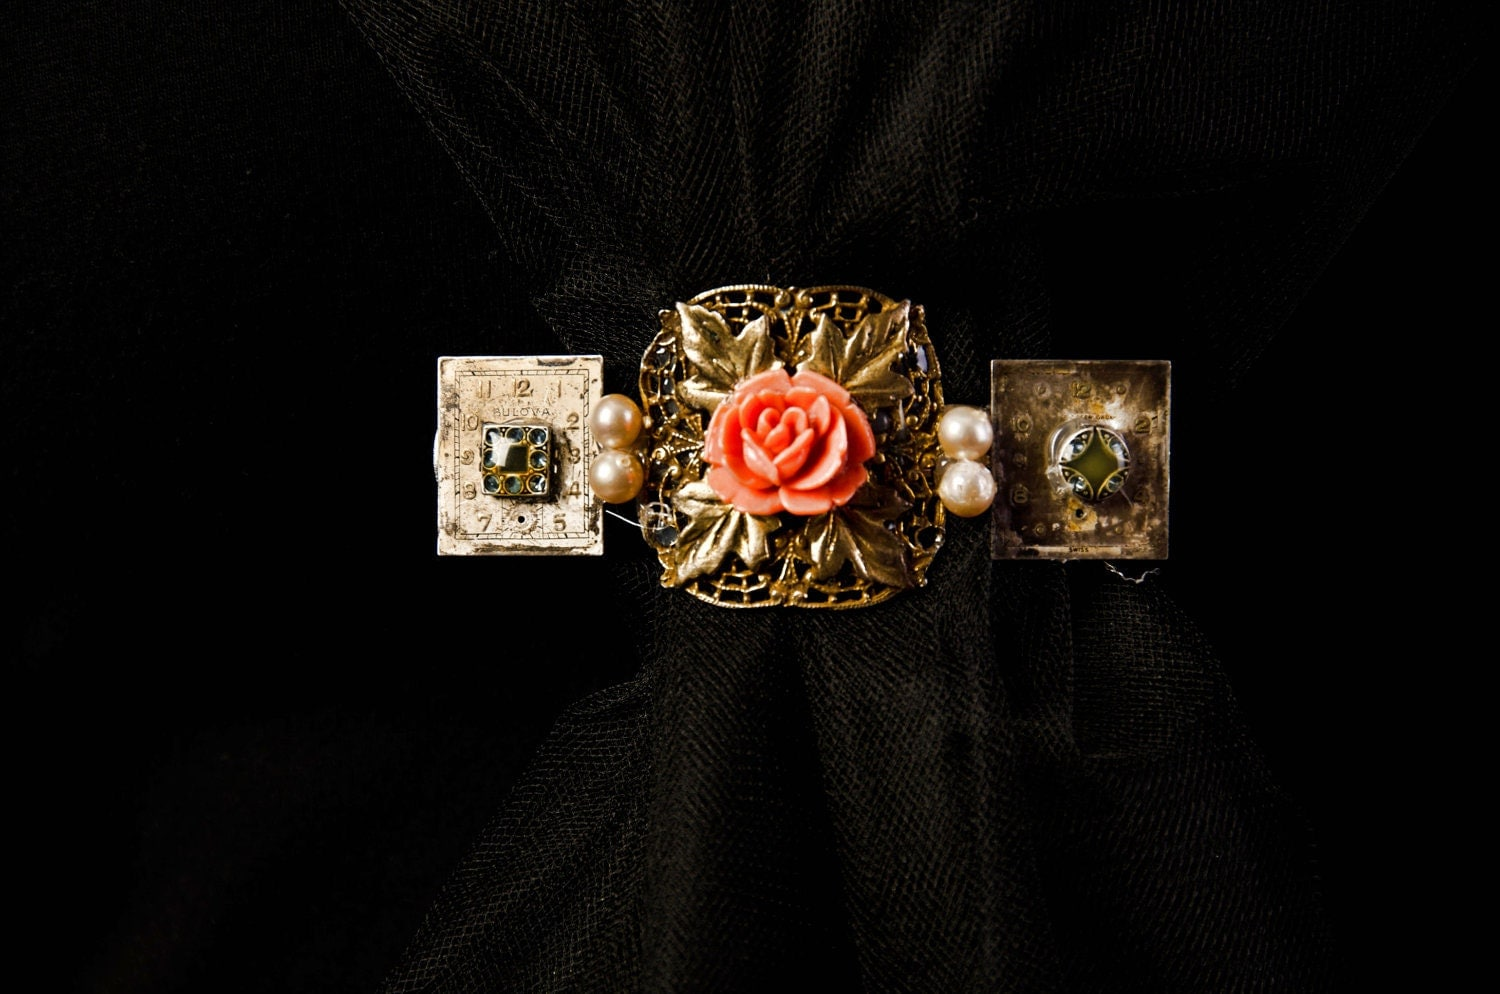 upcycled barrette with gold-toned flower centerpiece